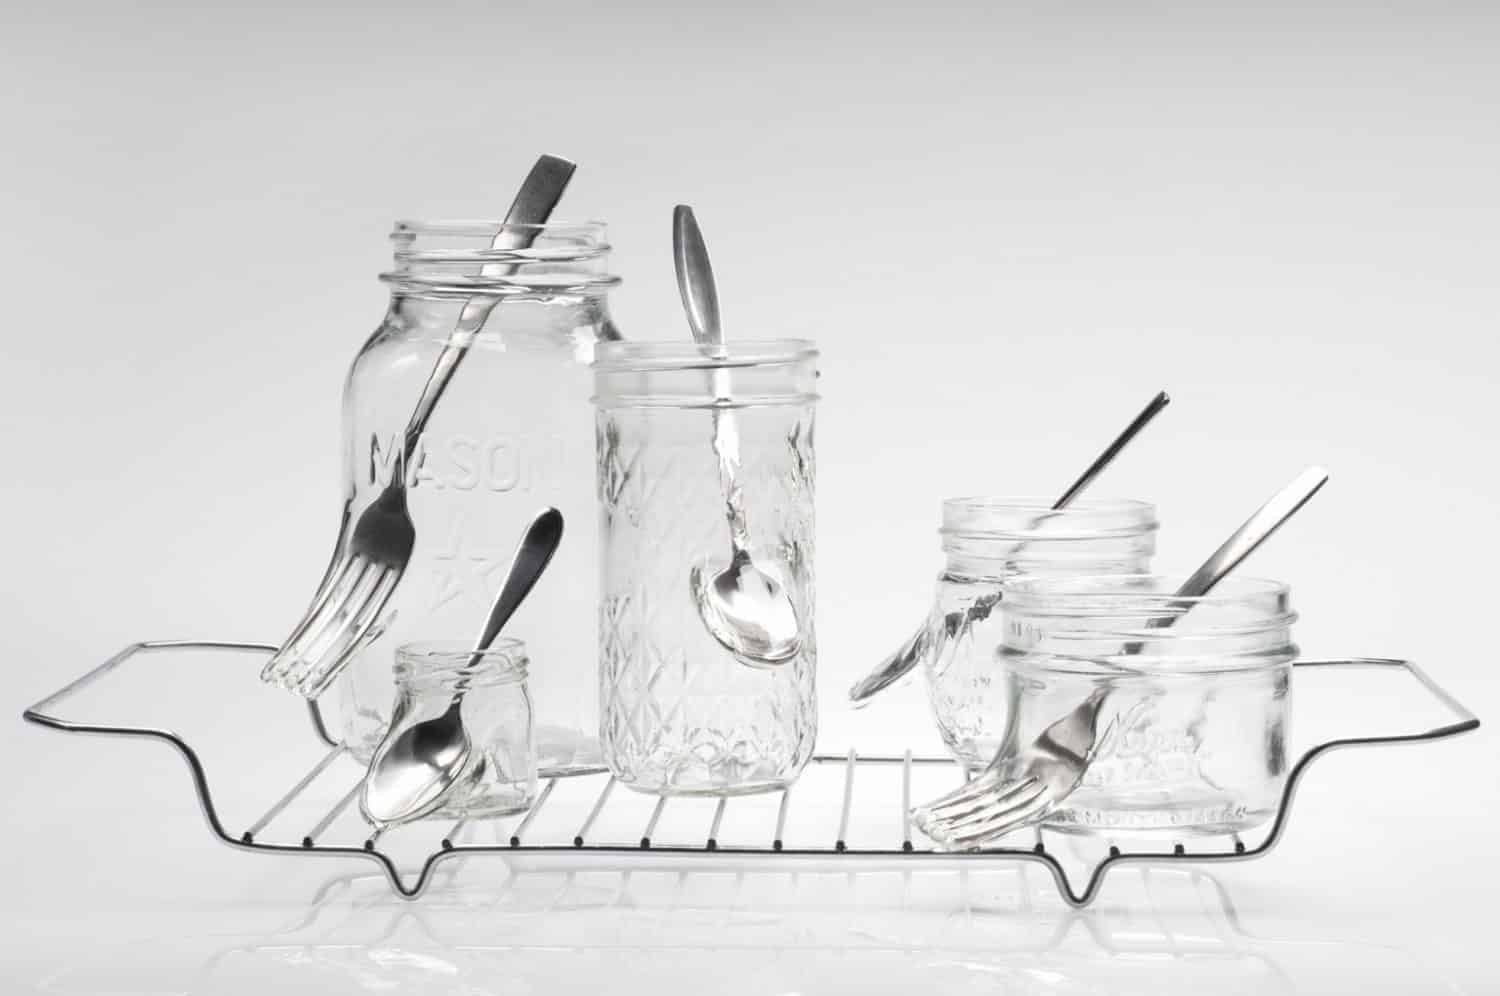 """""""Waste not want not,"""" Jelly jars, cutlery, stainless steel, 8.75 x 16.25 x 9 inches, photo credit: Elizabeth Torgerson-Lamark"""